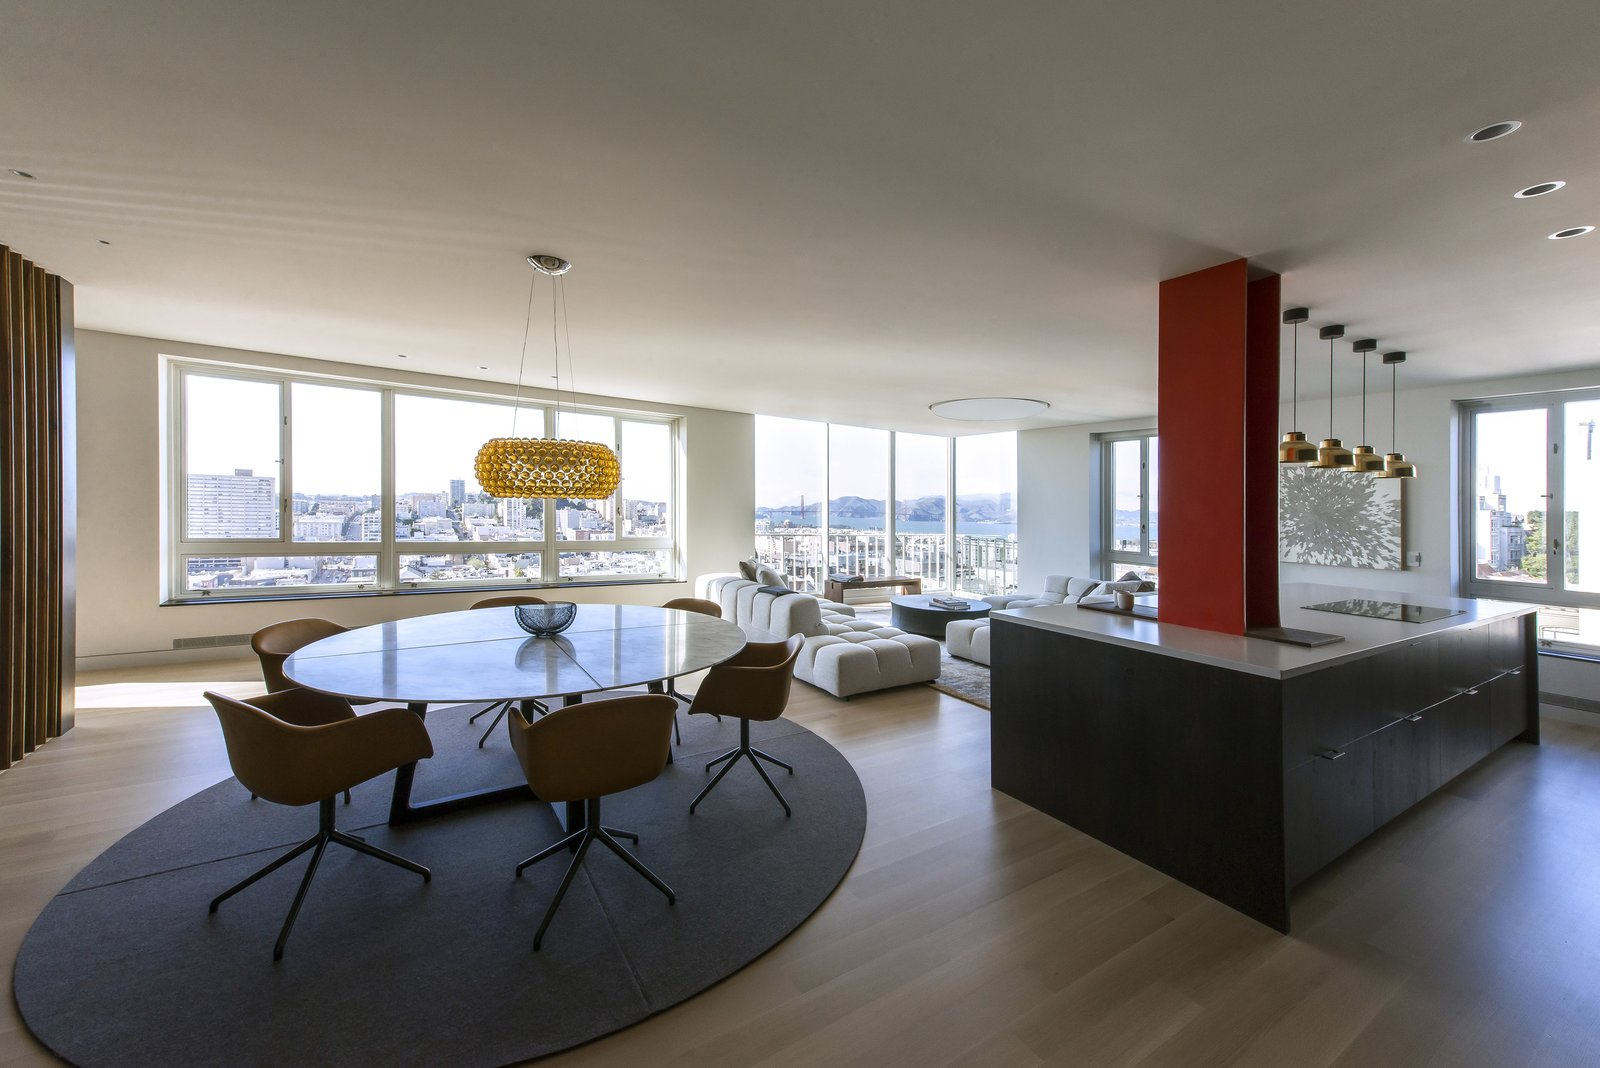 Living Room - Looking Toward the Golden Gate Bridge  Nob Hill Residence by Imbue Design